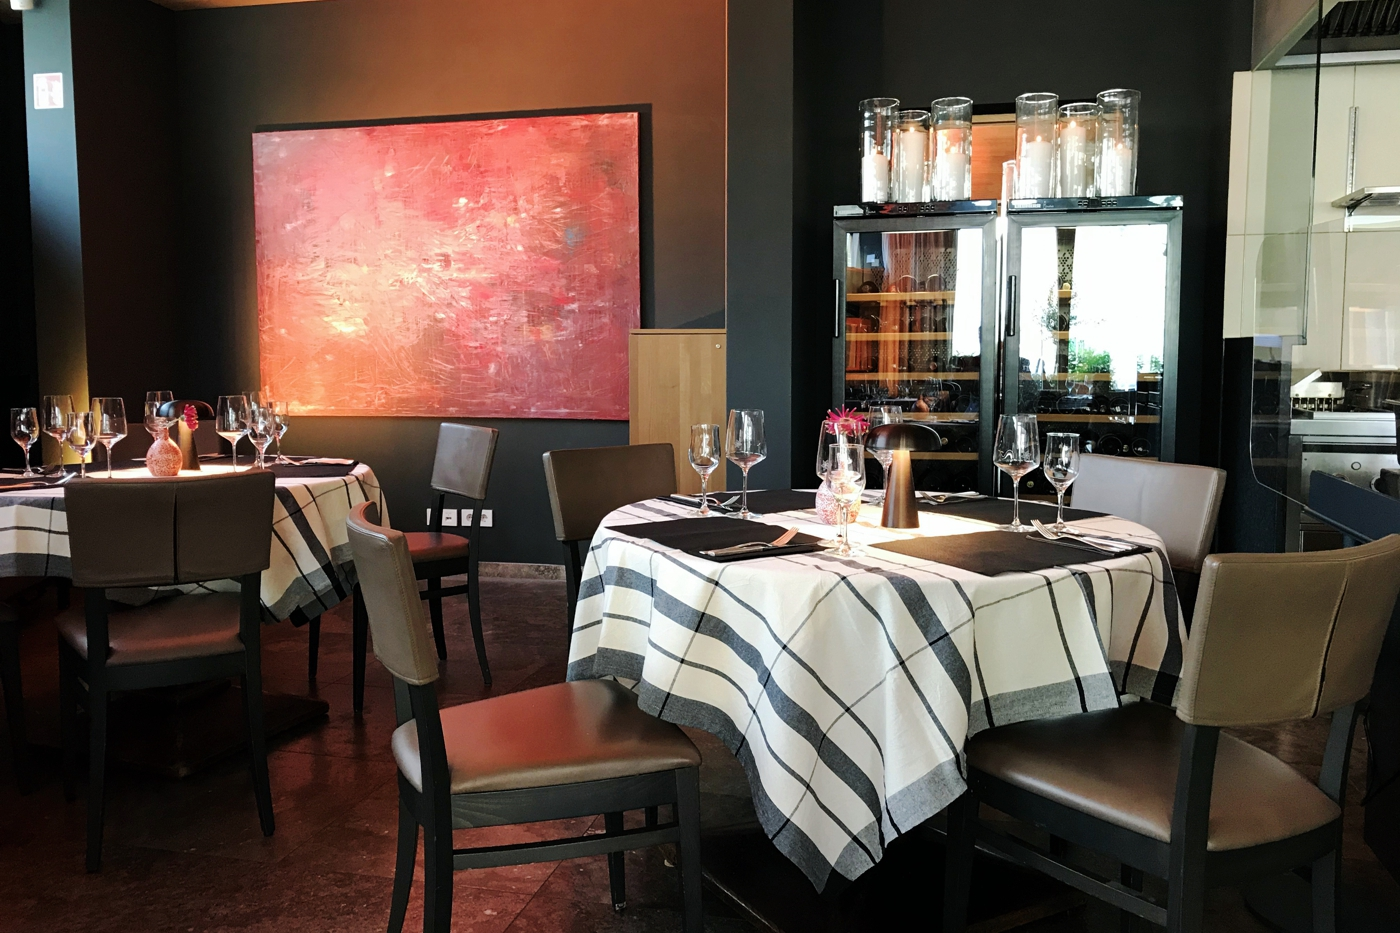 Restaurant in Bad Aibling